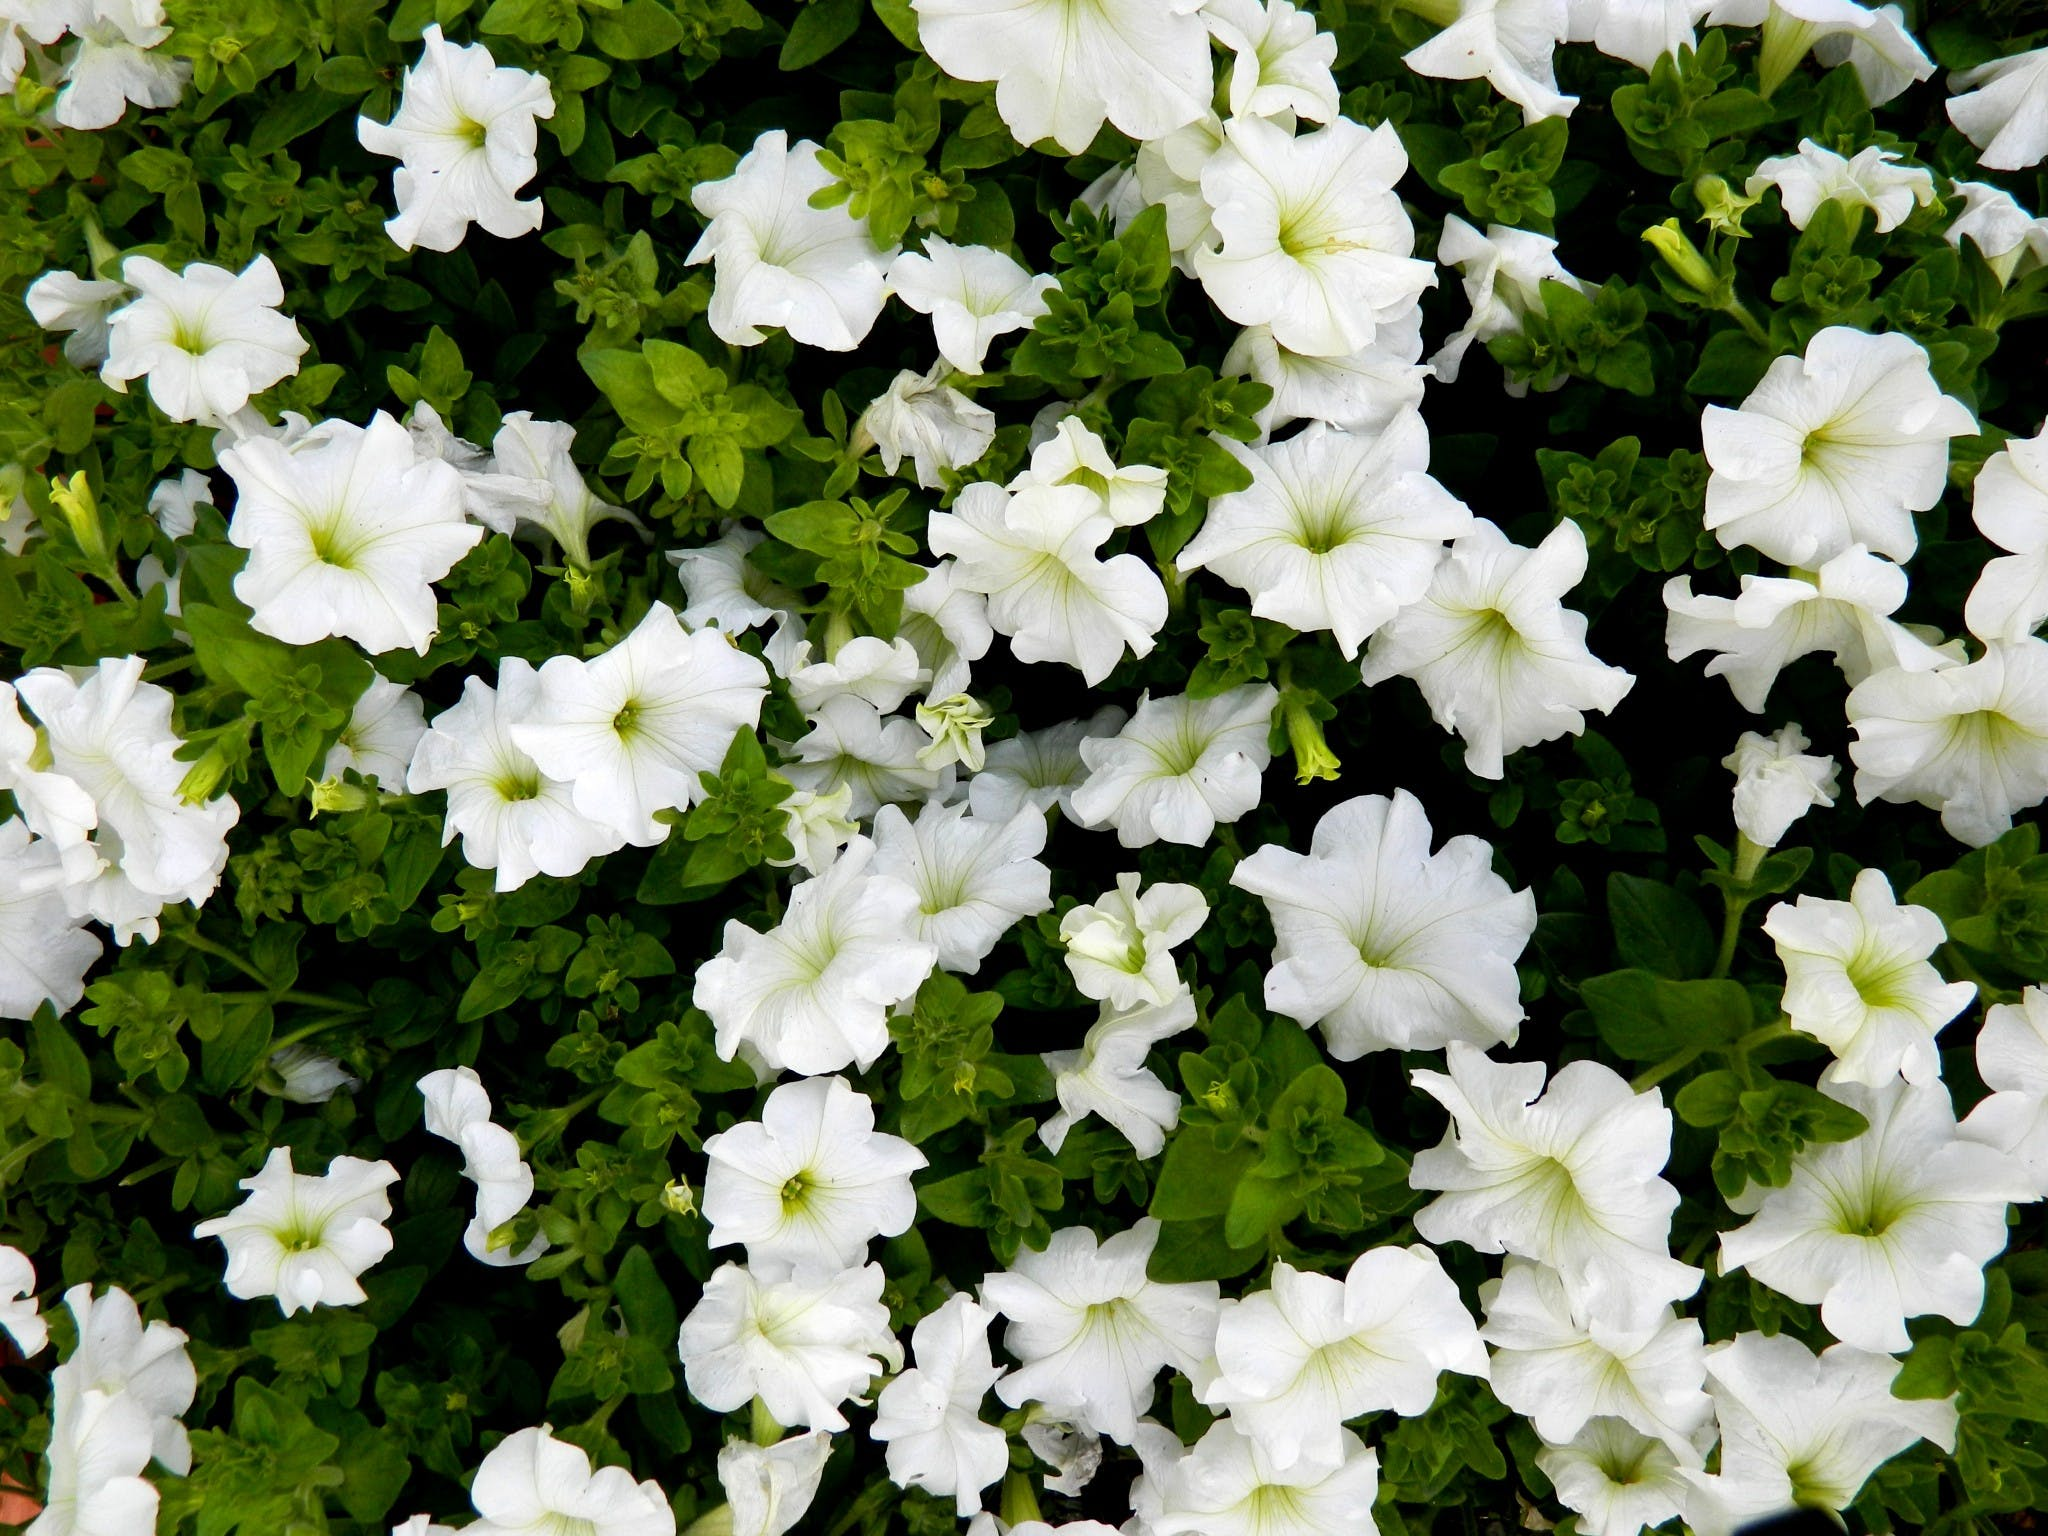 Free stock photo of flowers, white flowers